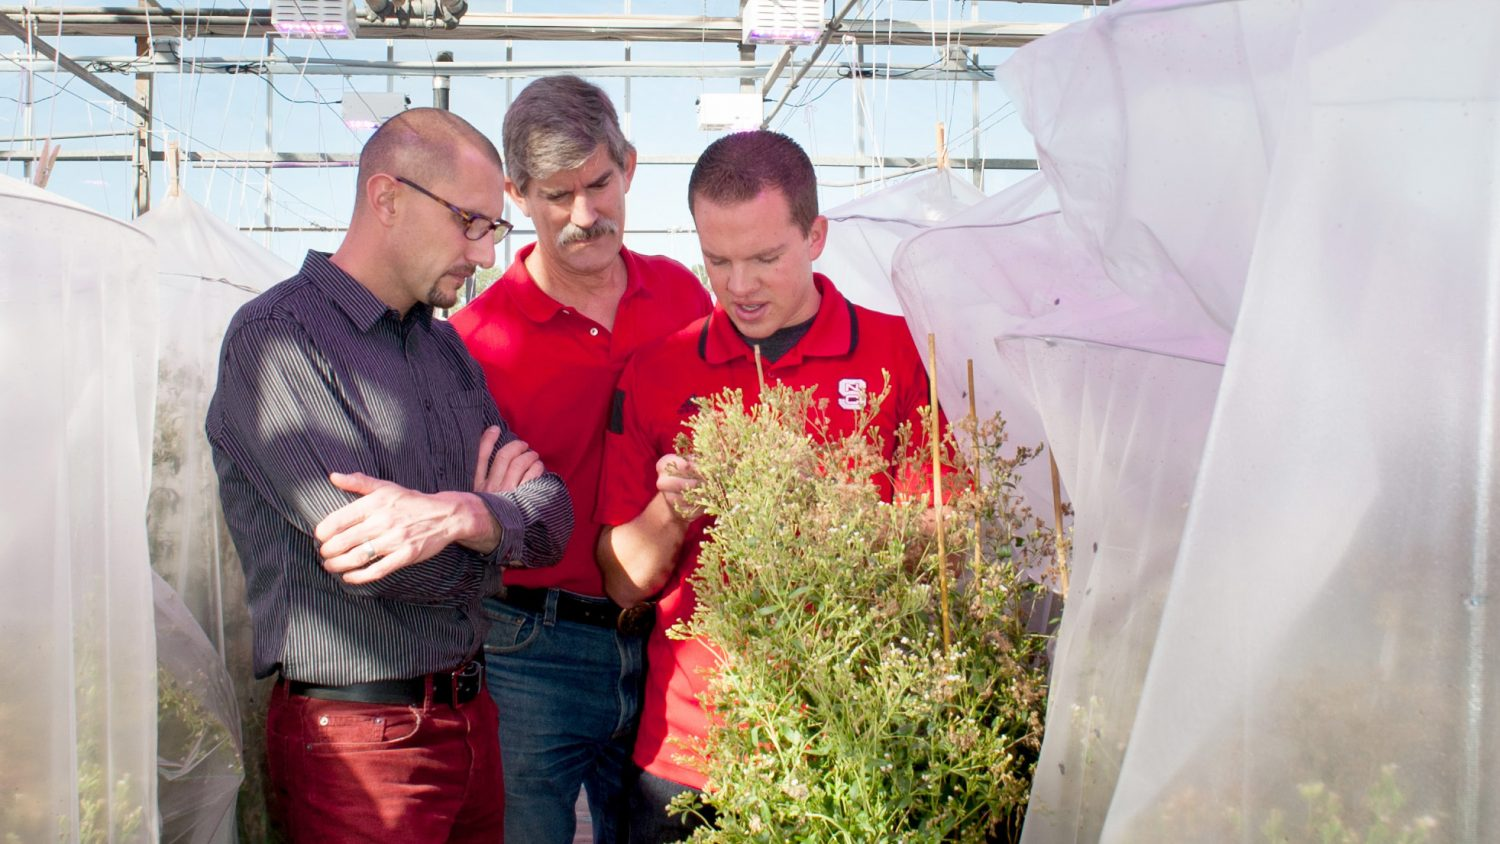 Three scientists looking at stevia in a greenhouse.